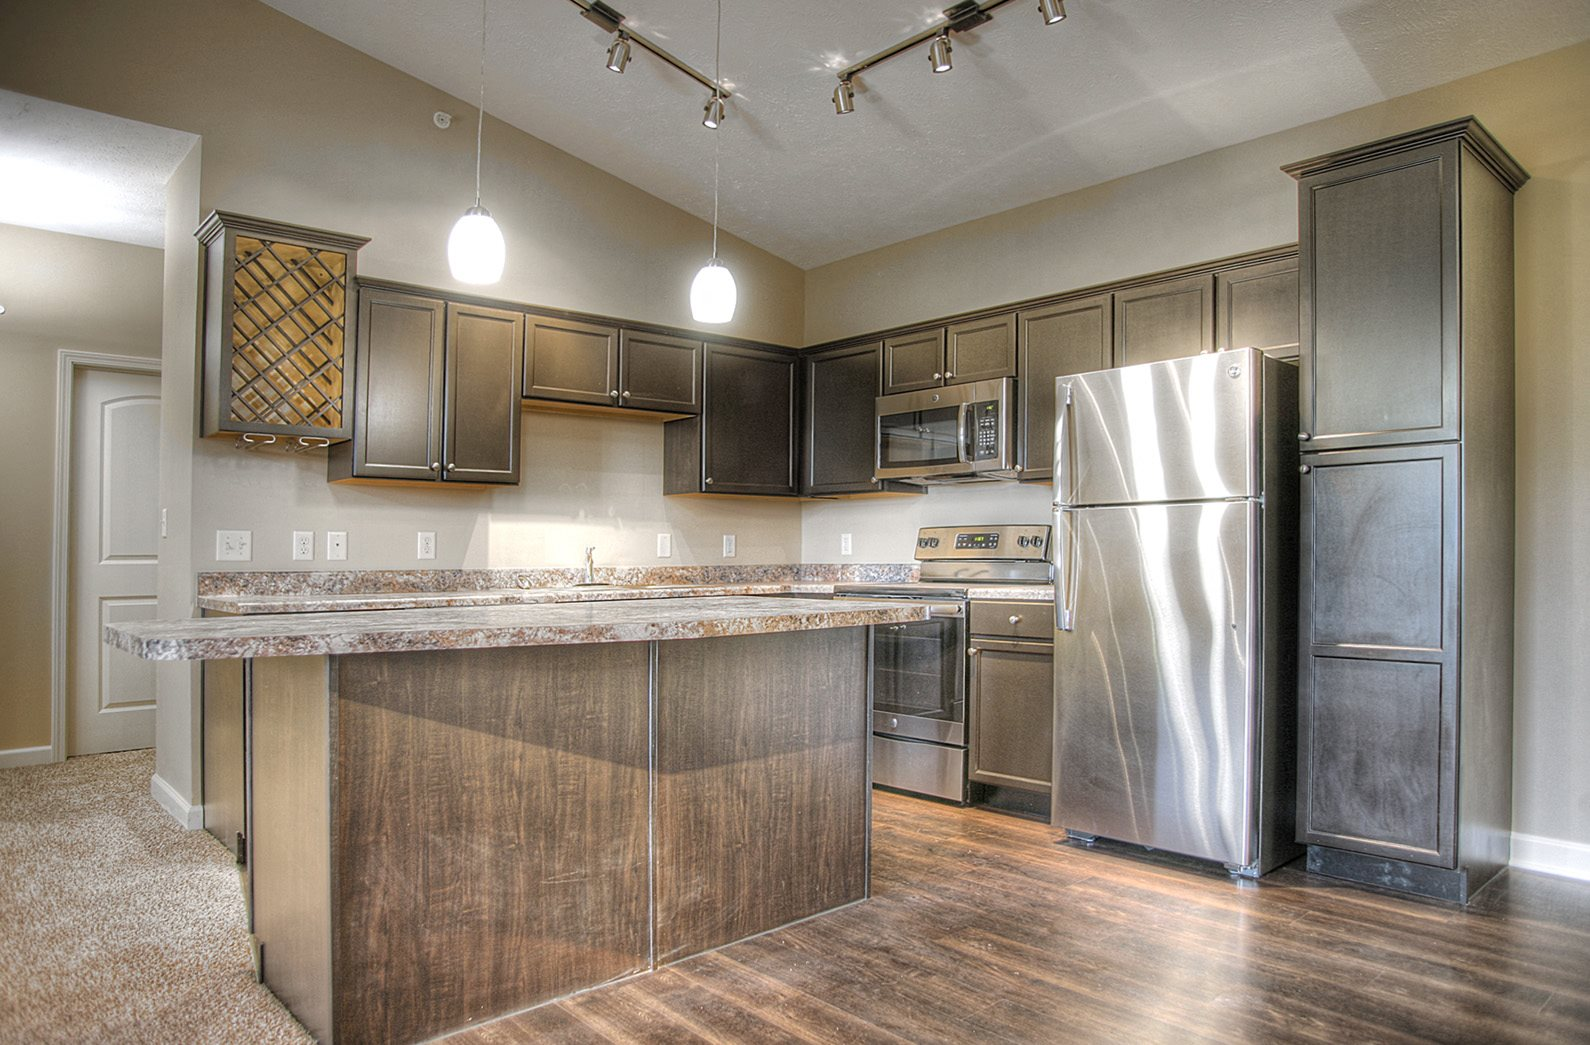 Summit falls apartments in lincoln ne - Two bedroom apartments lincoln ne ...